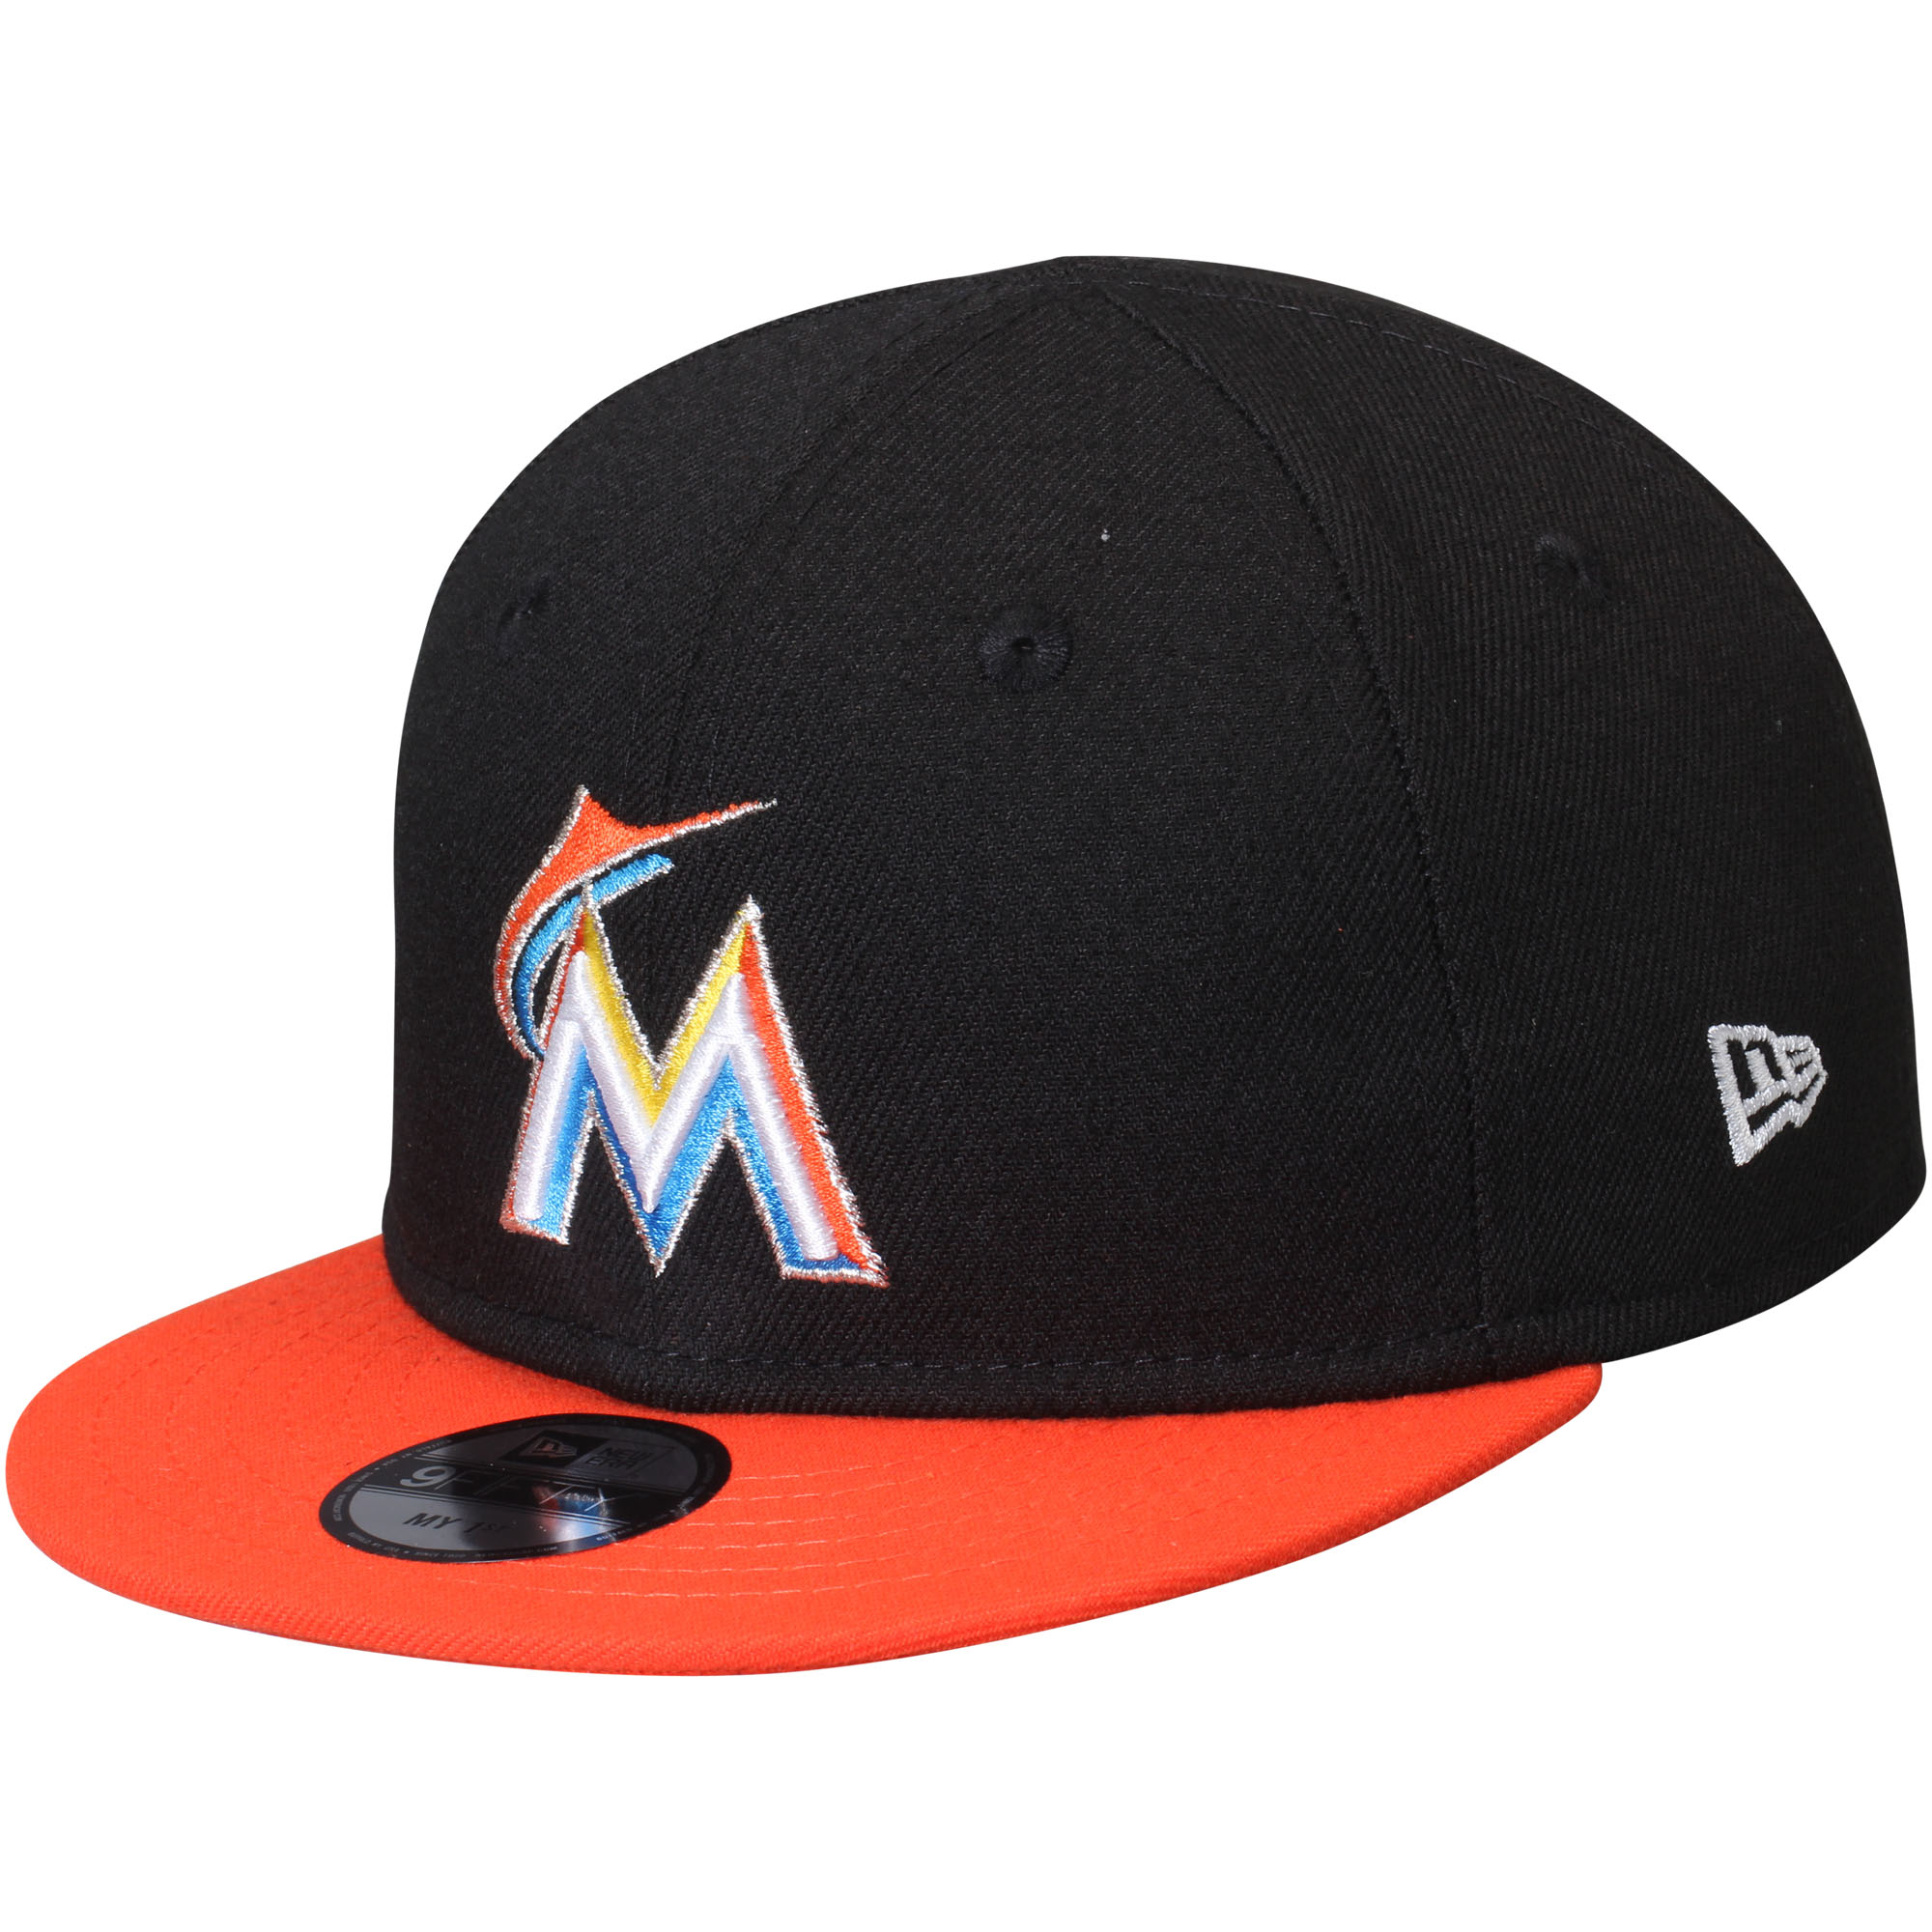 Miami Marlins New Era Infant My First 9FIFTY Adjustable Hat - Black/Orange - OSFA